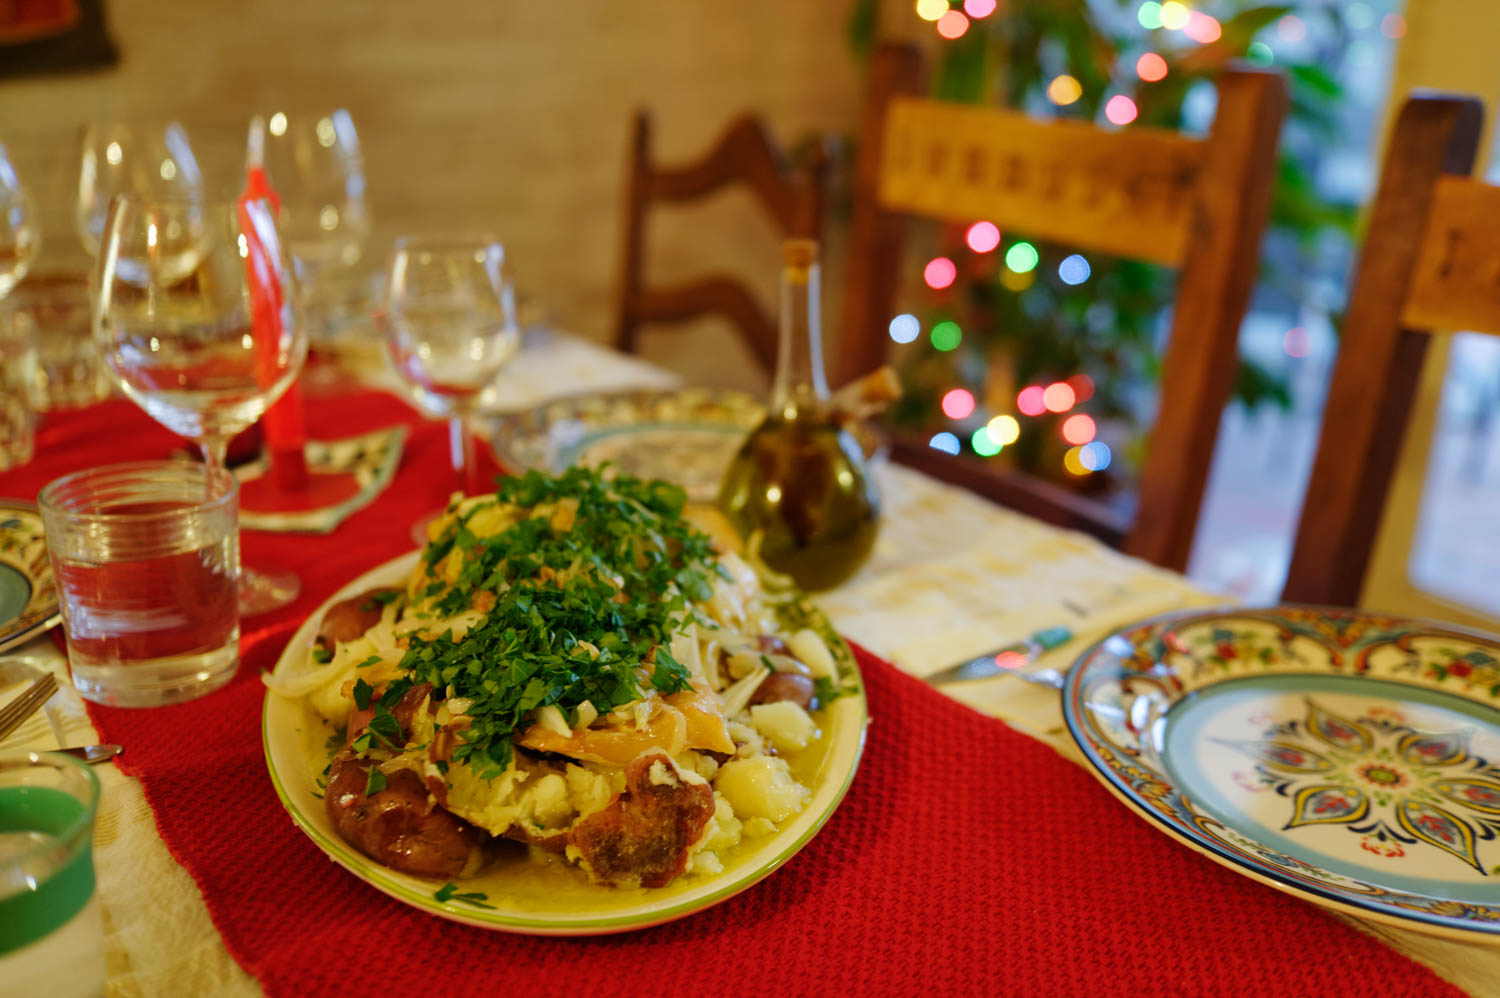 Antonio cooked us an amazing Portuguese Christmas dinner again this year. Bachalau a Lagareiro (delicious potato and cod dish, literally the olive press owner's cod).